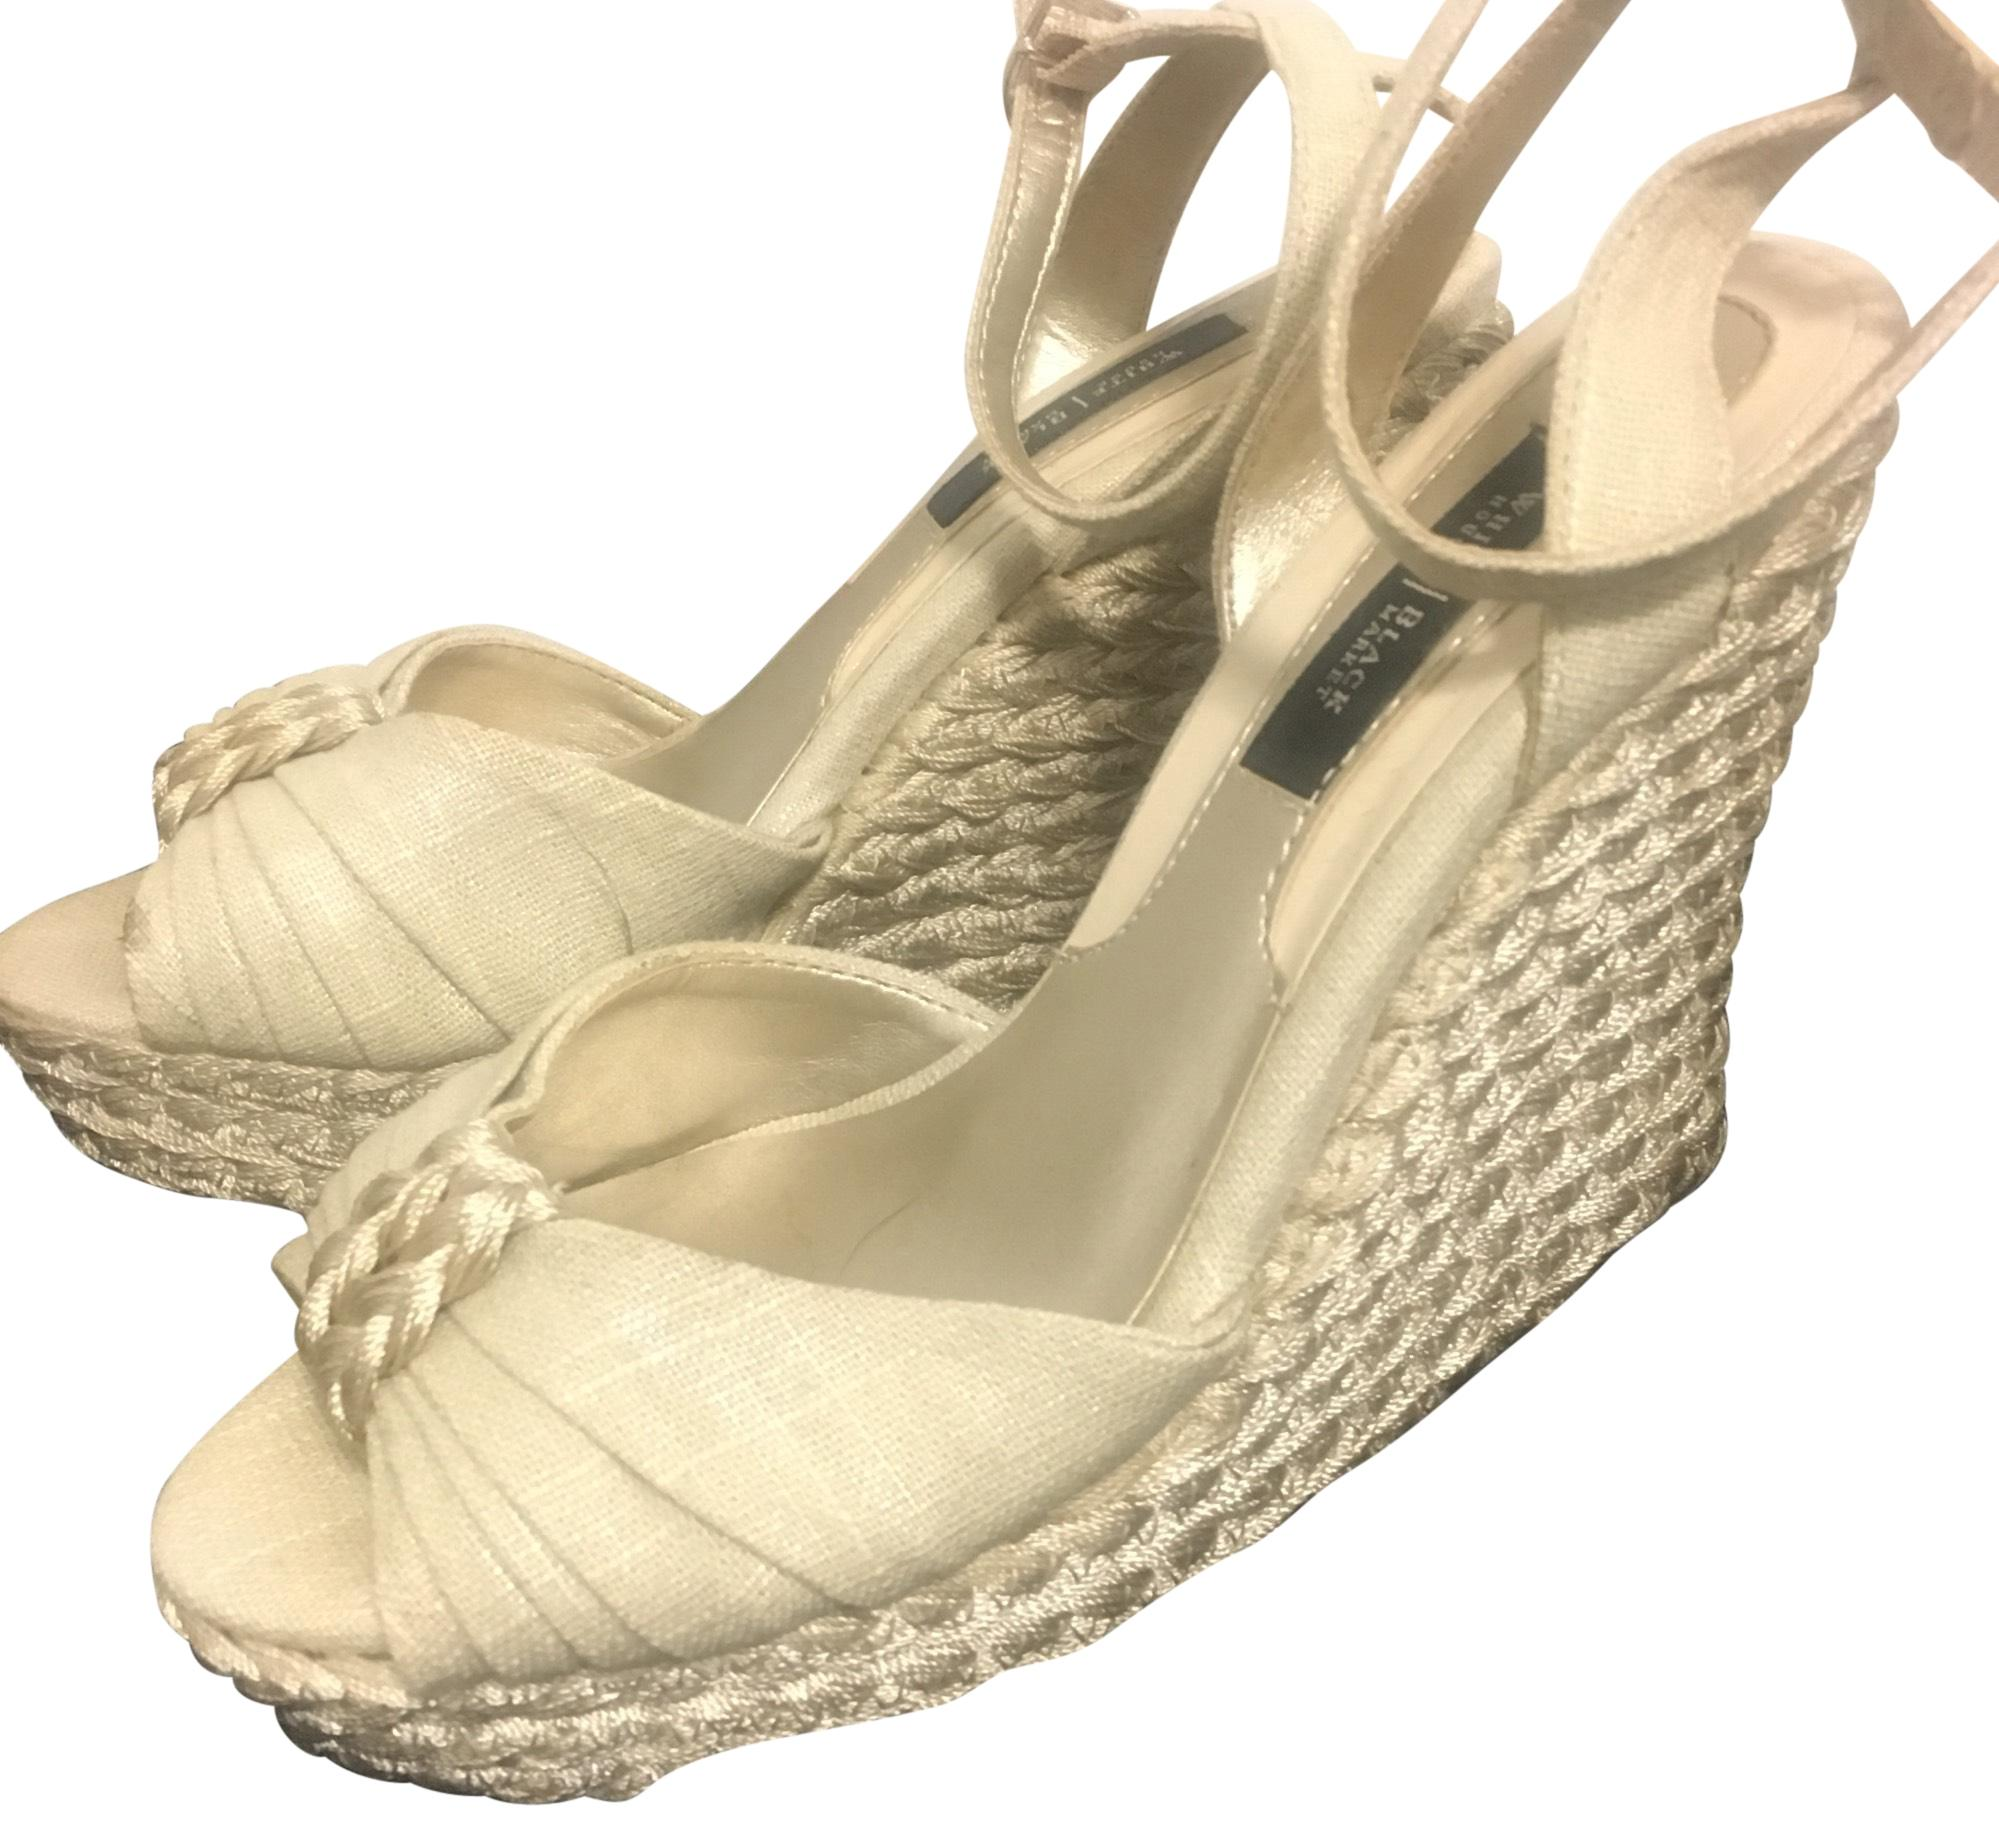 Find great deals on eBay for cream wedges. Shop with confidence. Skip to main content. eBay: Italian Shoemakers Women's Wedge Sandal Tan Cream Brown Size 6 Leather Italy. Italian Shoemakers · US $ or Best Offer +$ shipping. Helen's Heart Cream Wedge Shoes With Accent sz 6, 7, or 8.